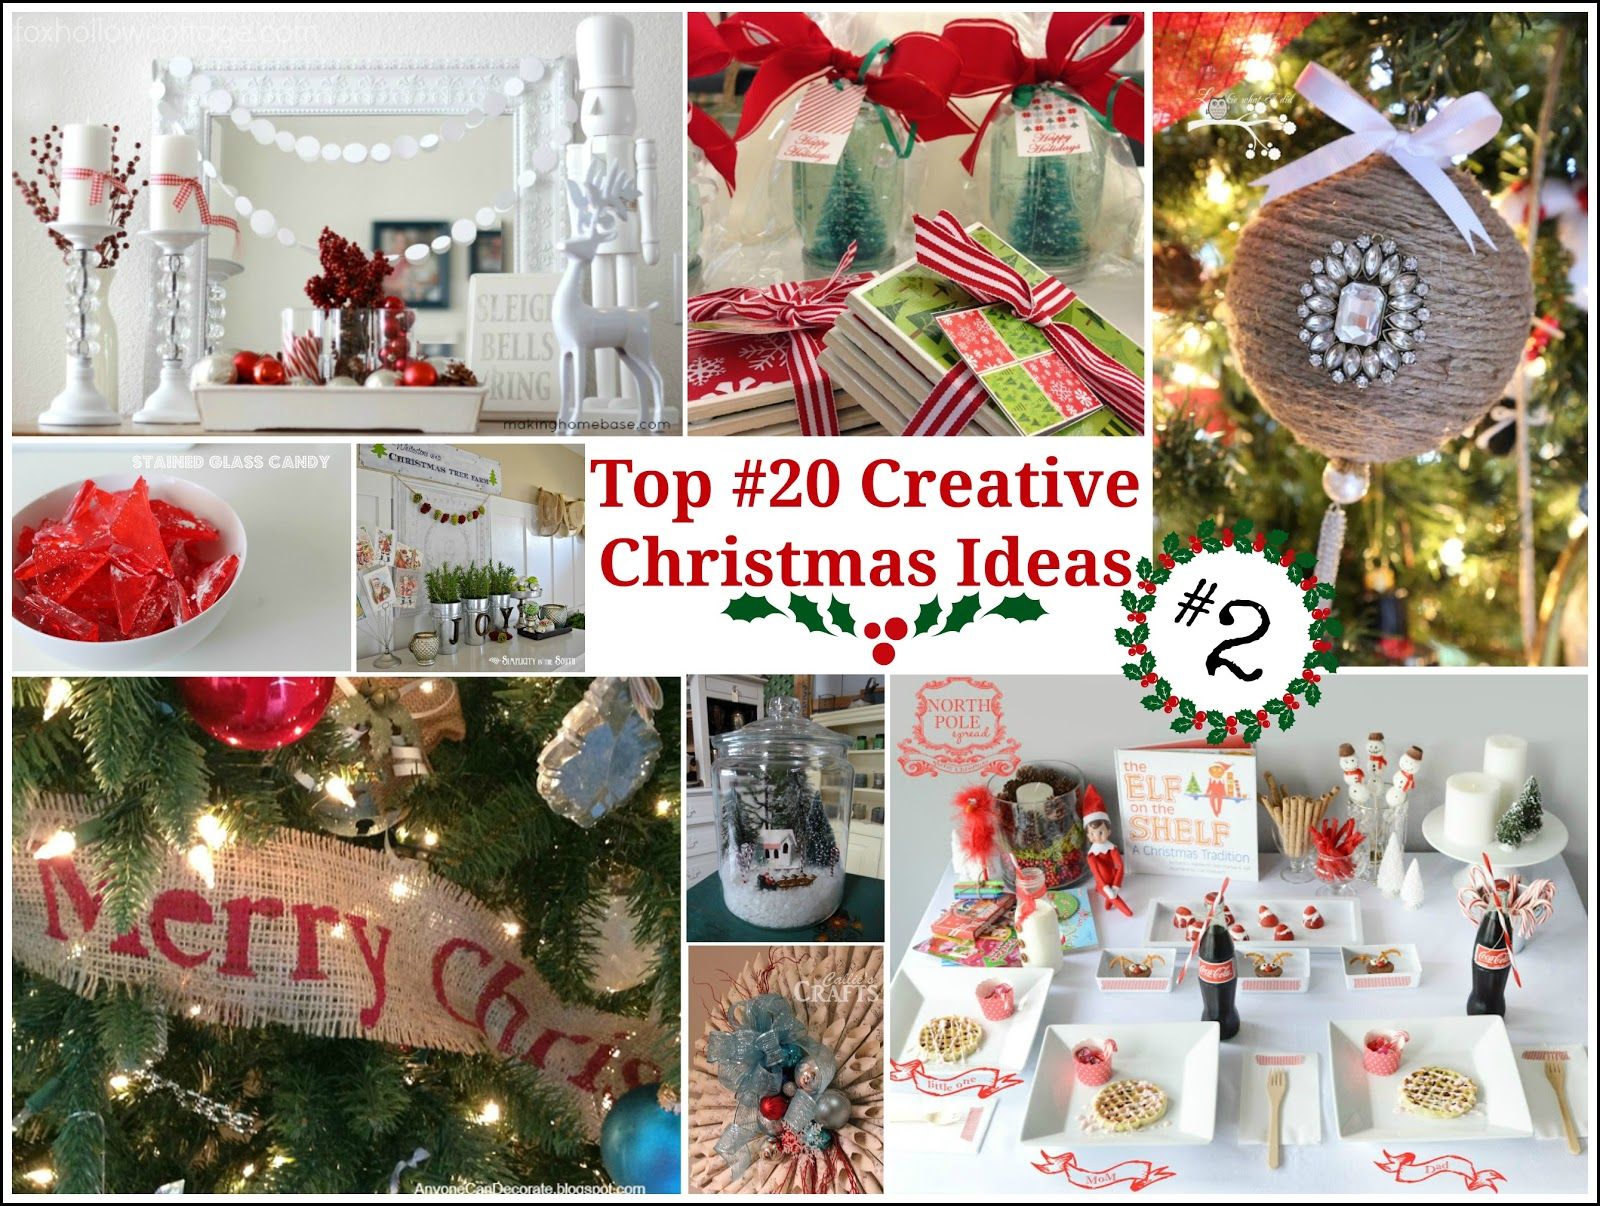 How To Win Crafts For Christmas Gifts Pinterest